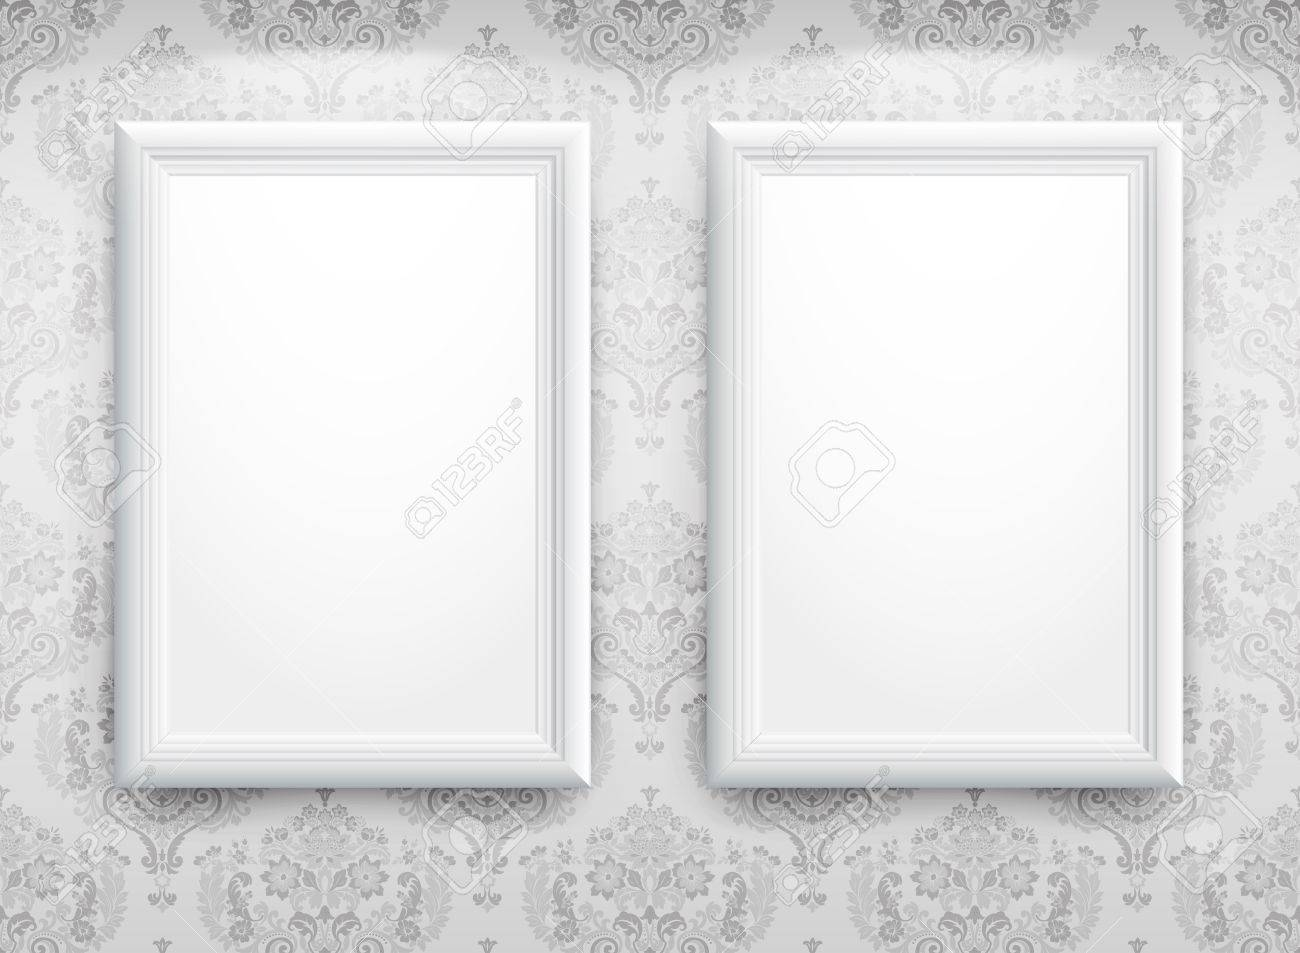 3d Empty Frames On The Wall. Vintage Background Royalty Free ...